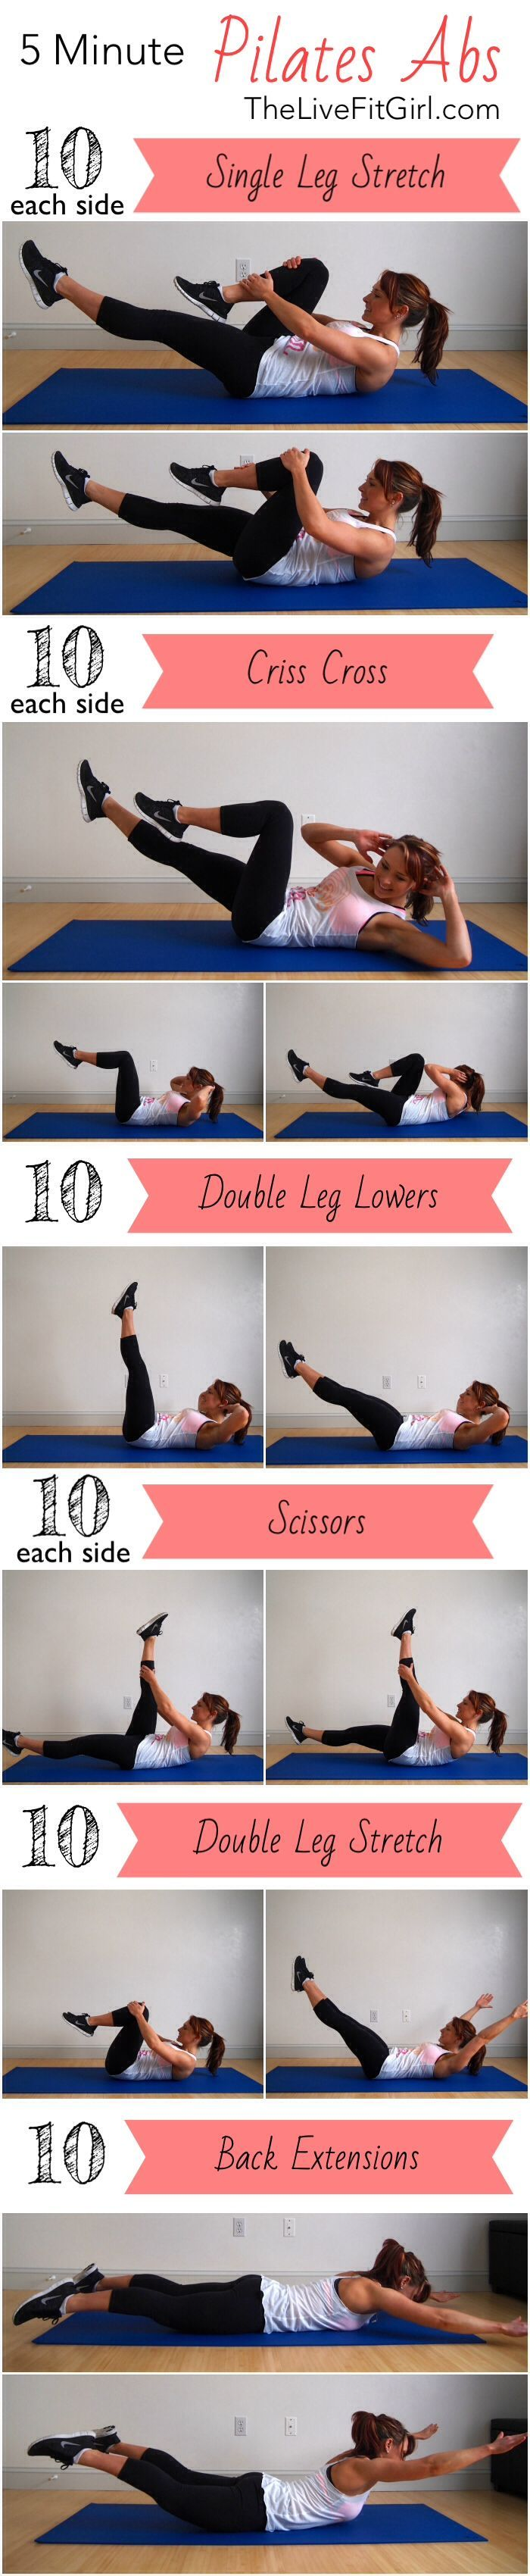 5 Minute Pilates Abs Routine frugal fitness tips, thrifty fitness tips